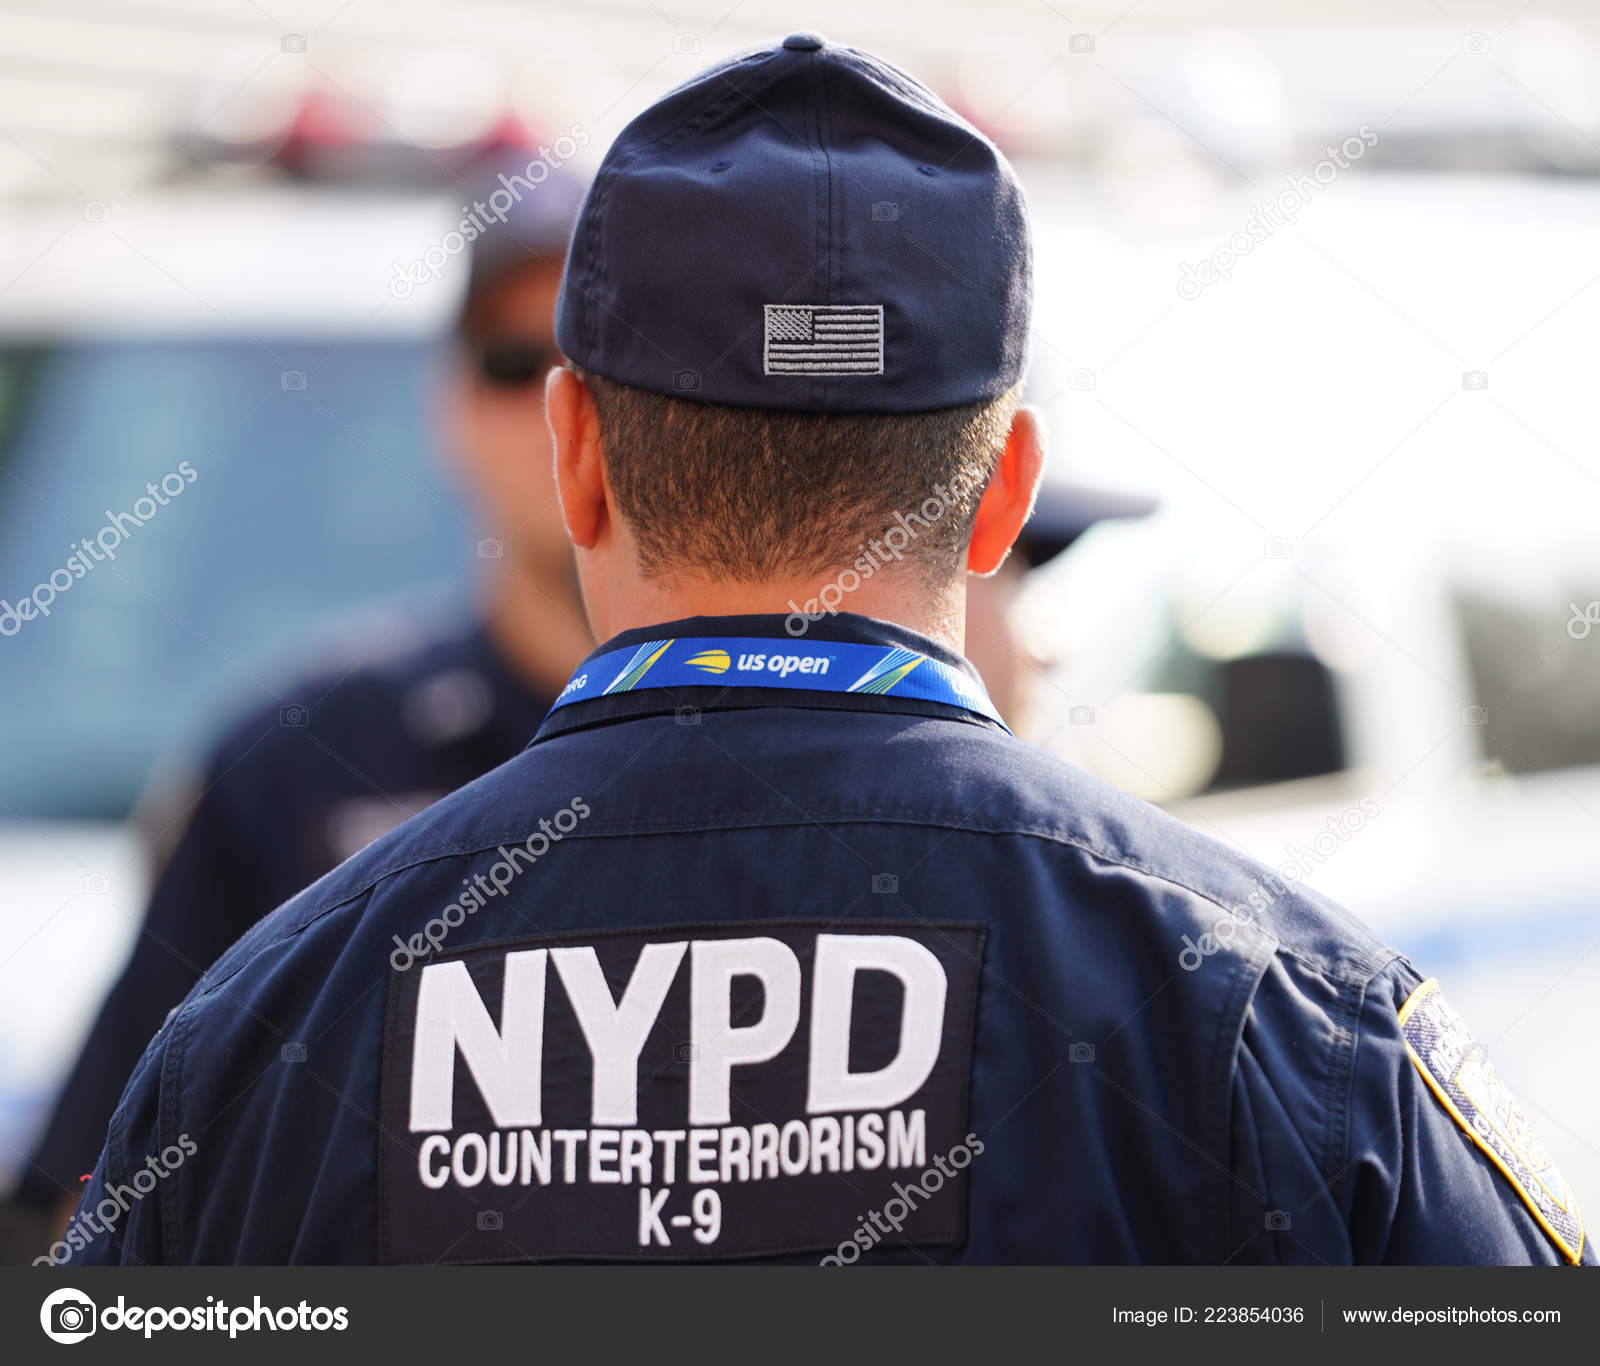 04e2f9d6 NEW YORK - AUGUST 27, 2018: NYPD counter terrorism K-9 police officer  provides security at National Tennis Center during 201U8 S Open in New York  — Photo by ...